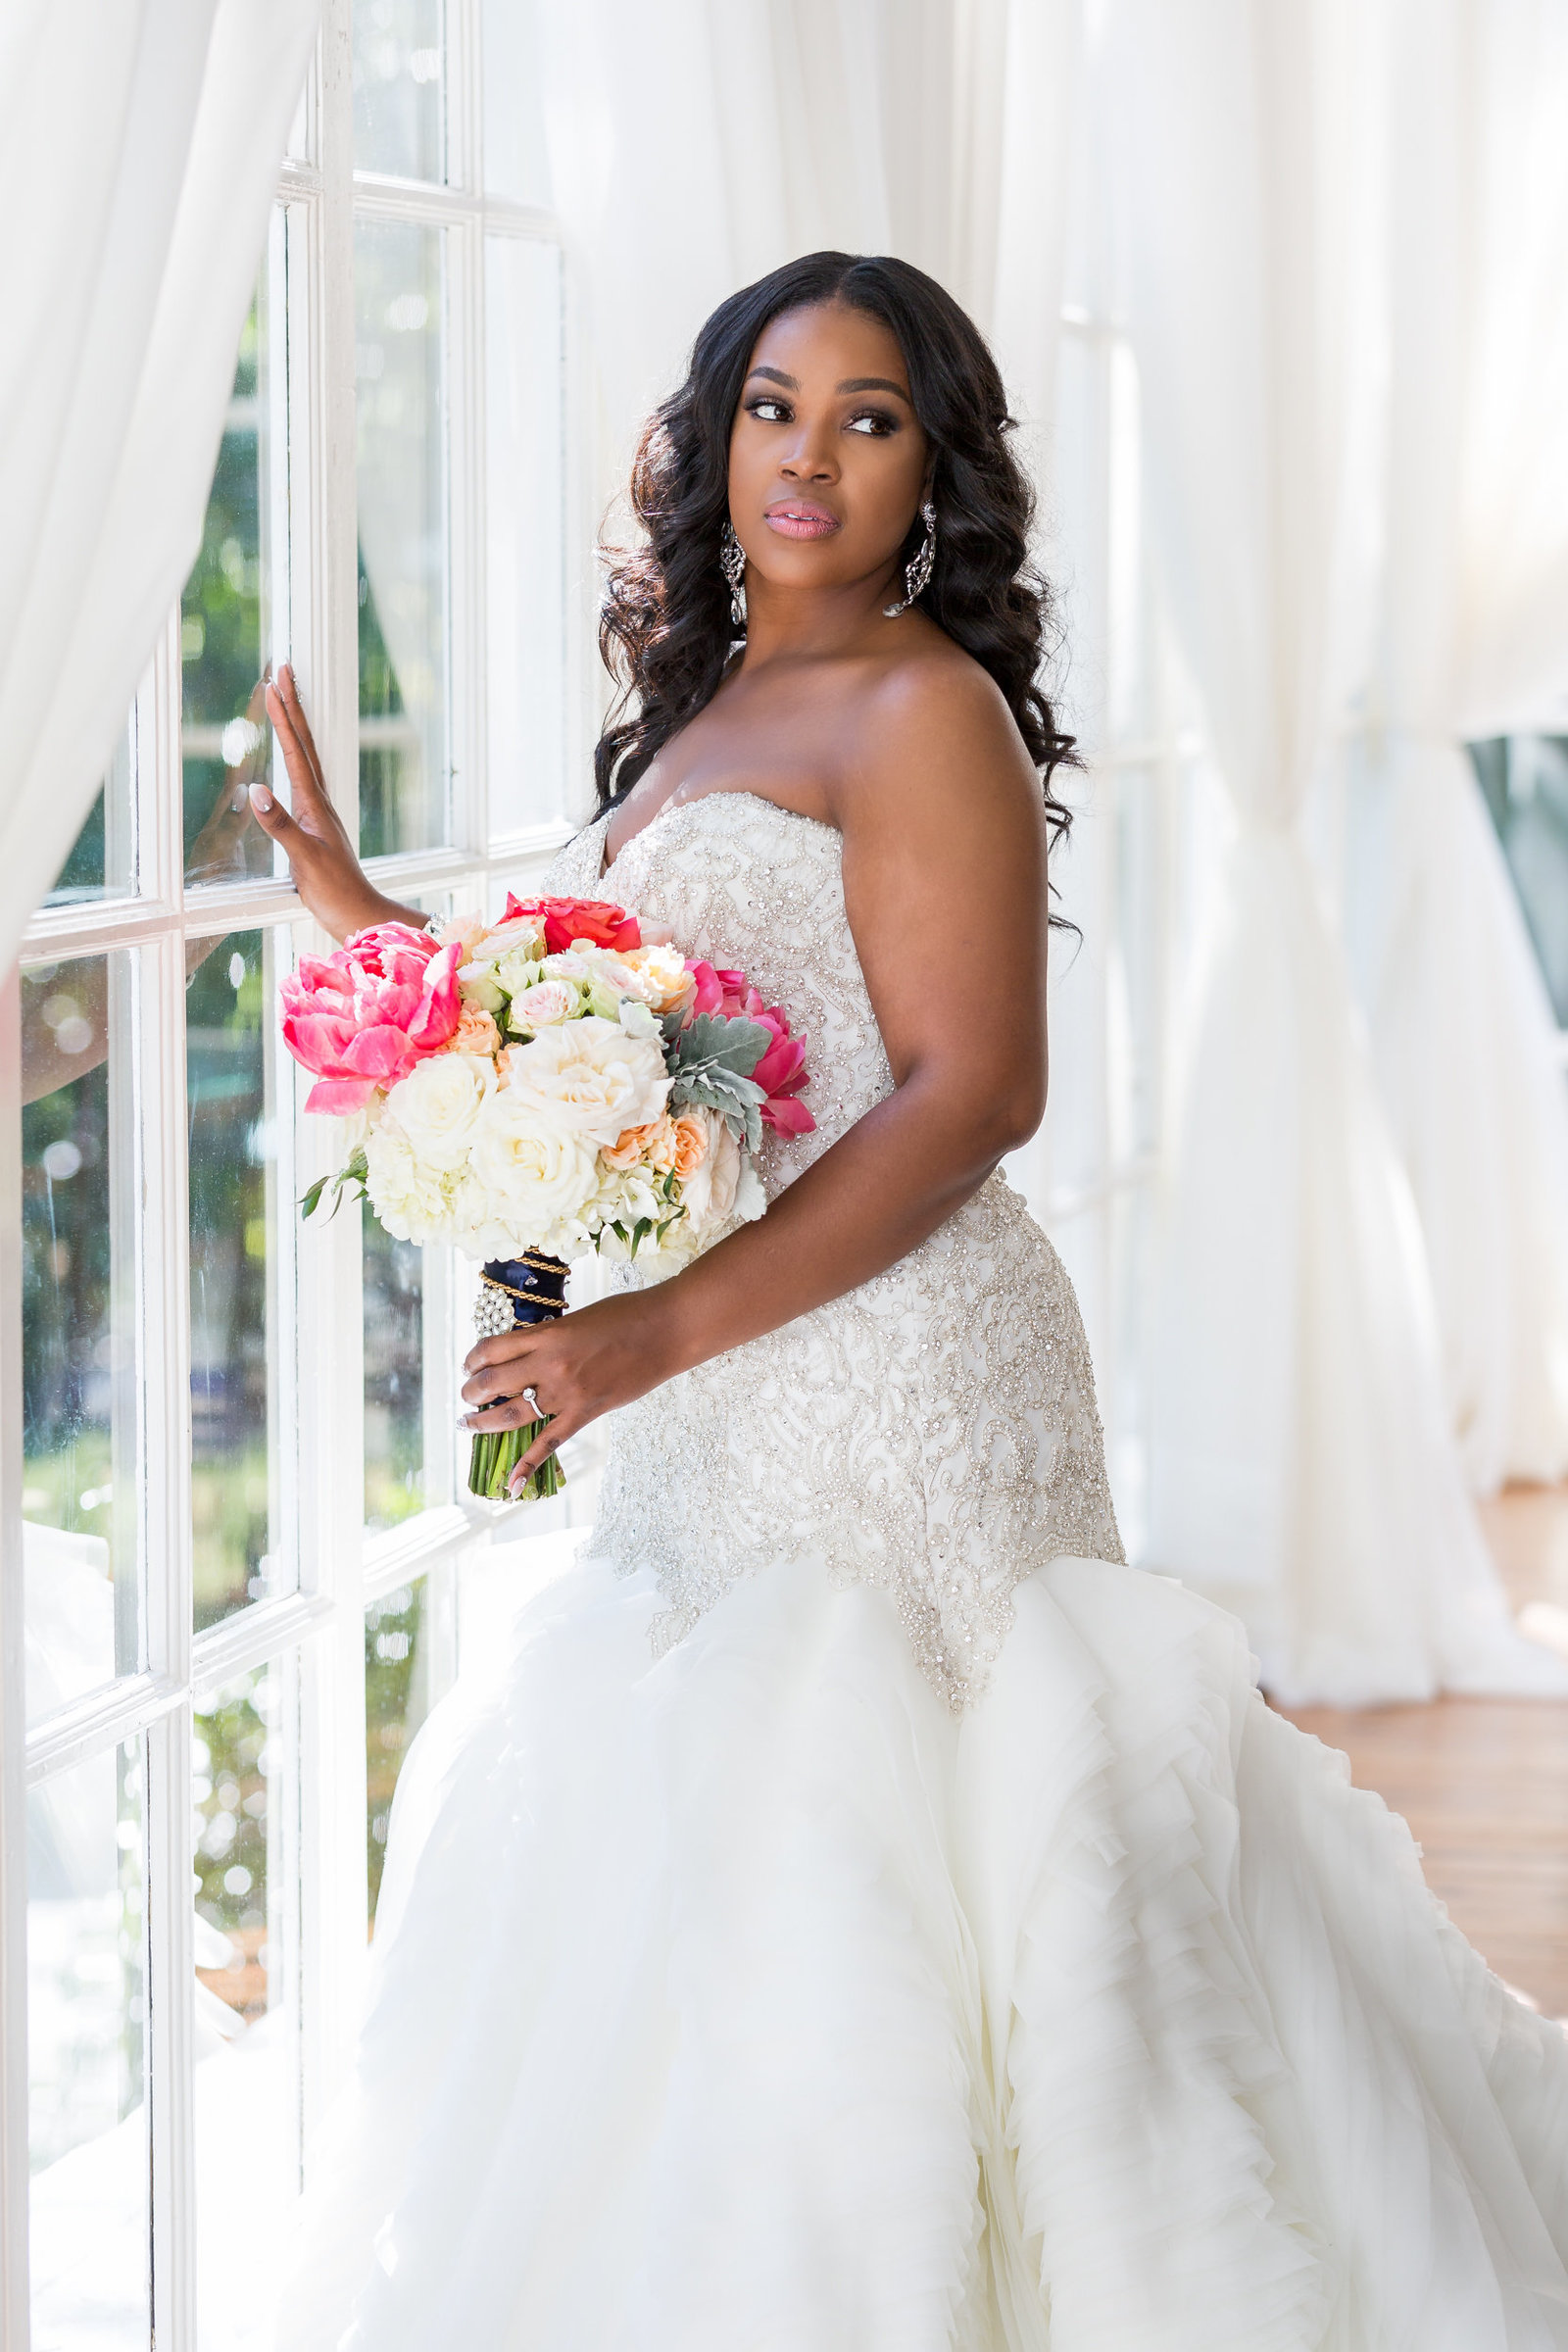 The Estate at Legendary Events - Atlanta wedding photographer - Mecca Gamble